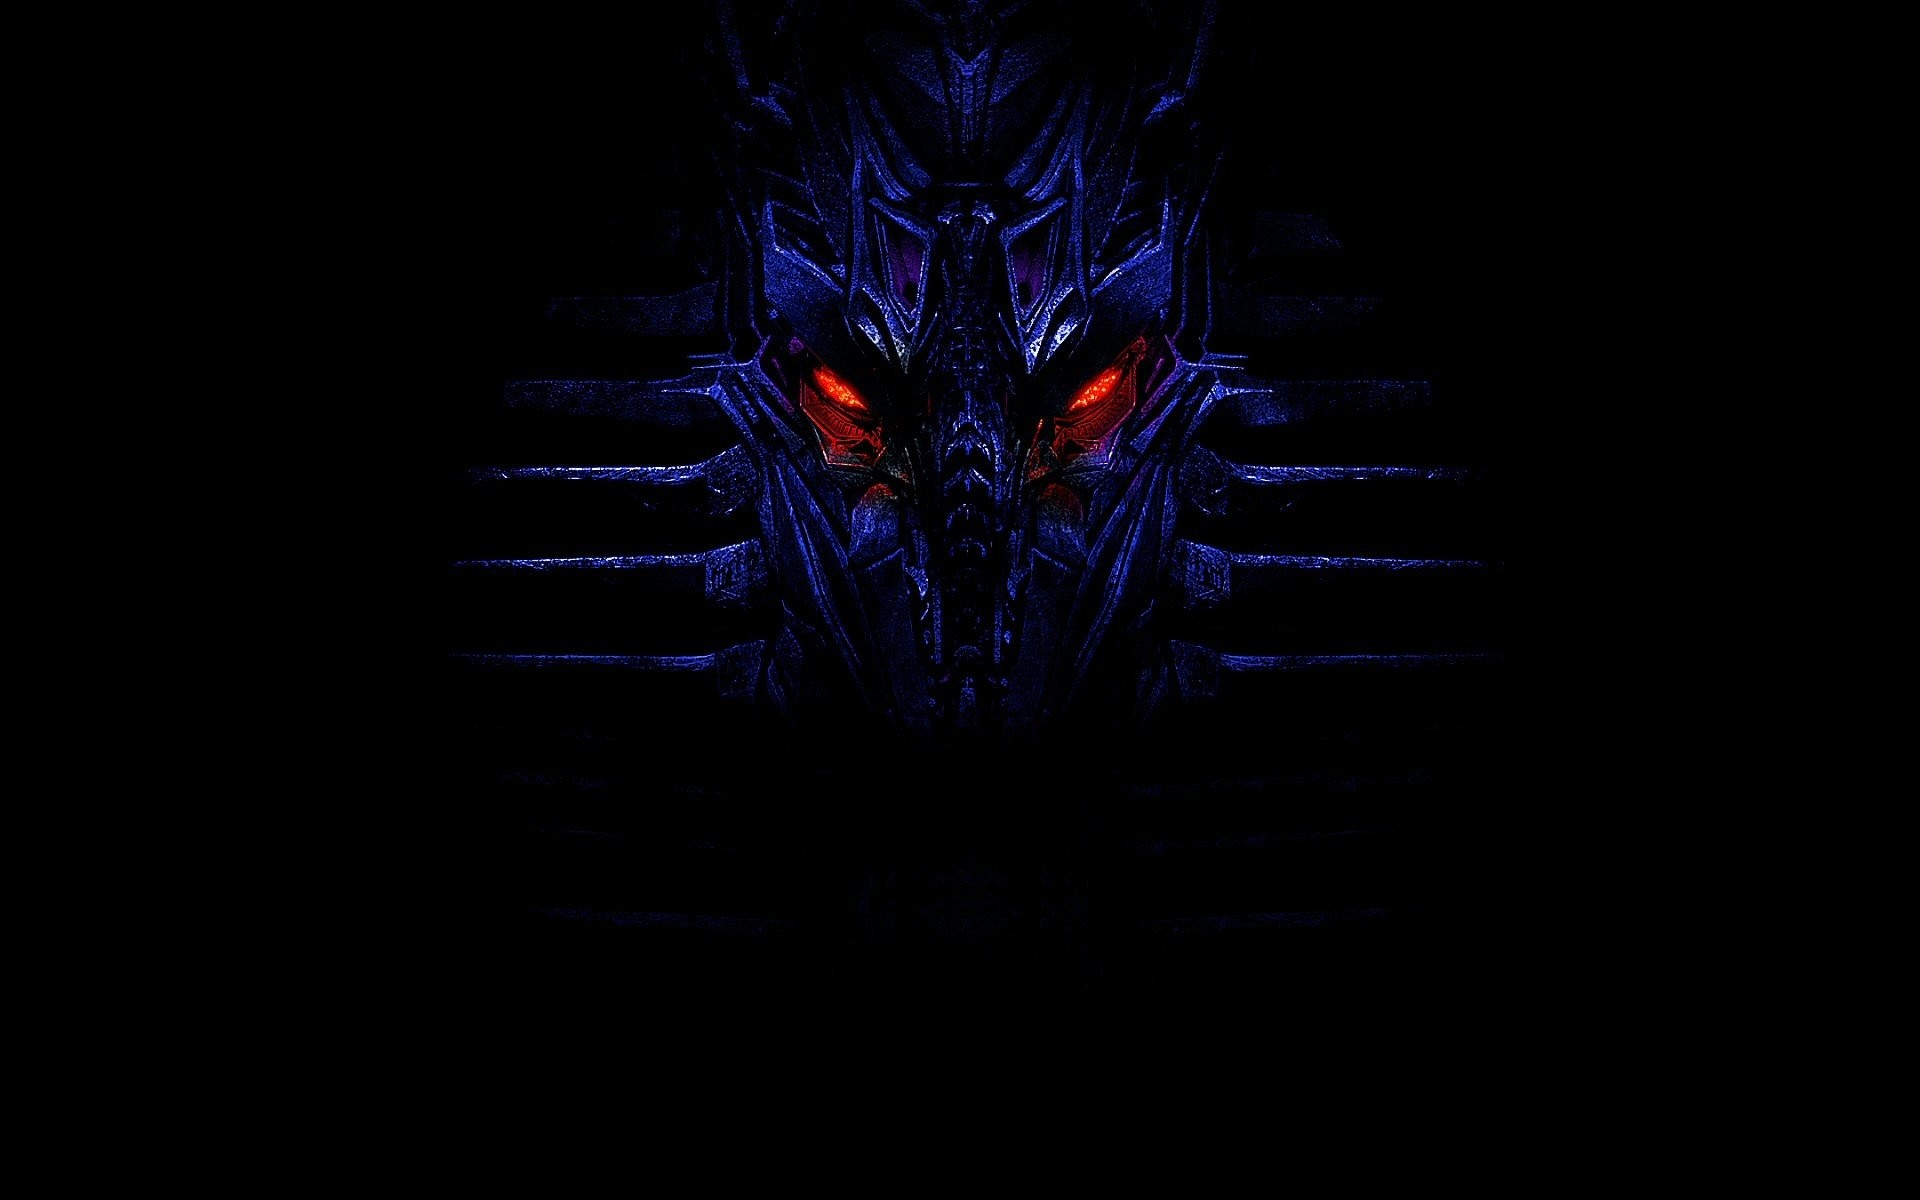 wallpaper of transformers